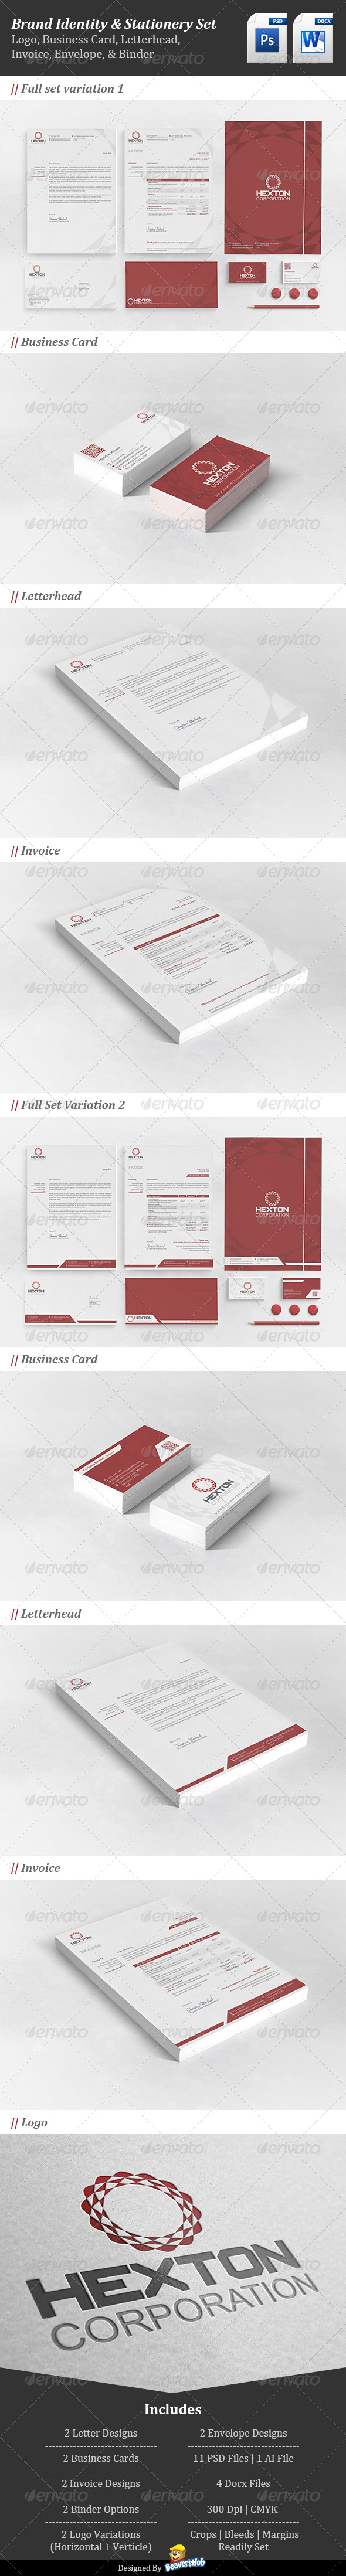 Corporate Brand Identity : Hexton Corporation - Stationery Print Templates